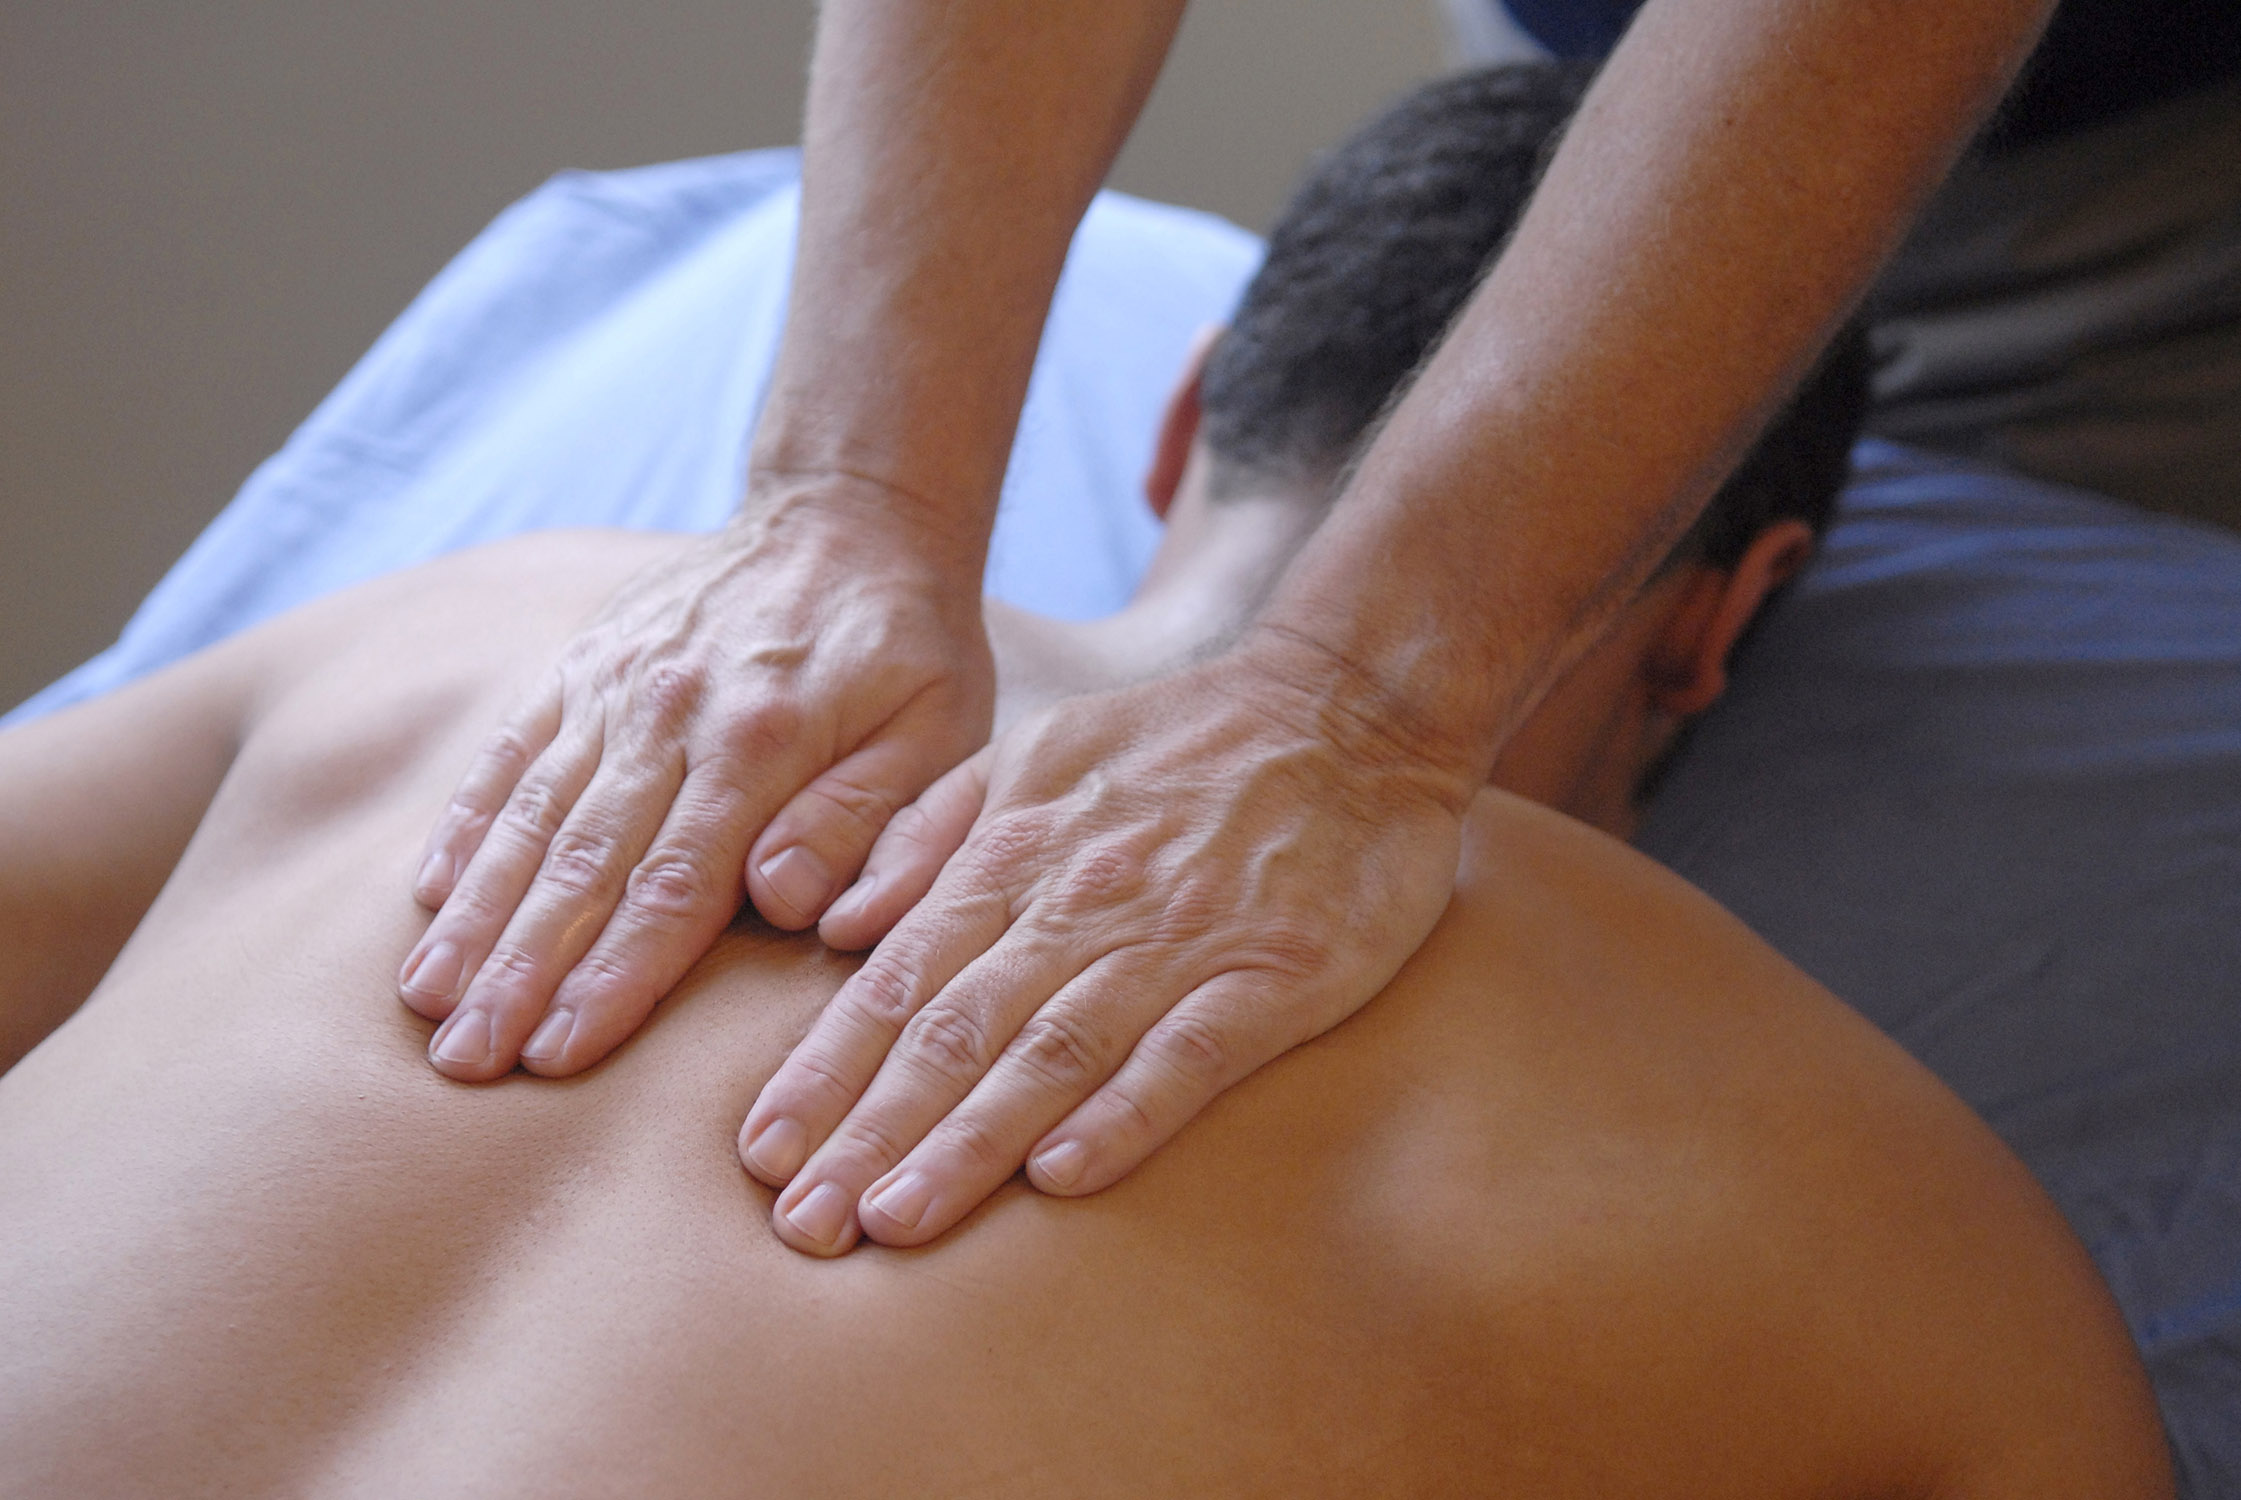 e8de4935b5 Massage Therapy for Health Purposes